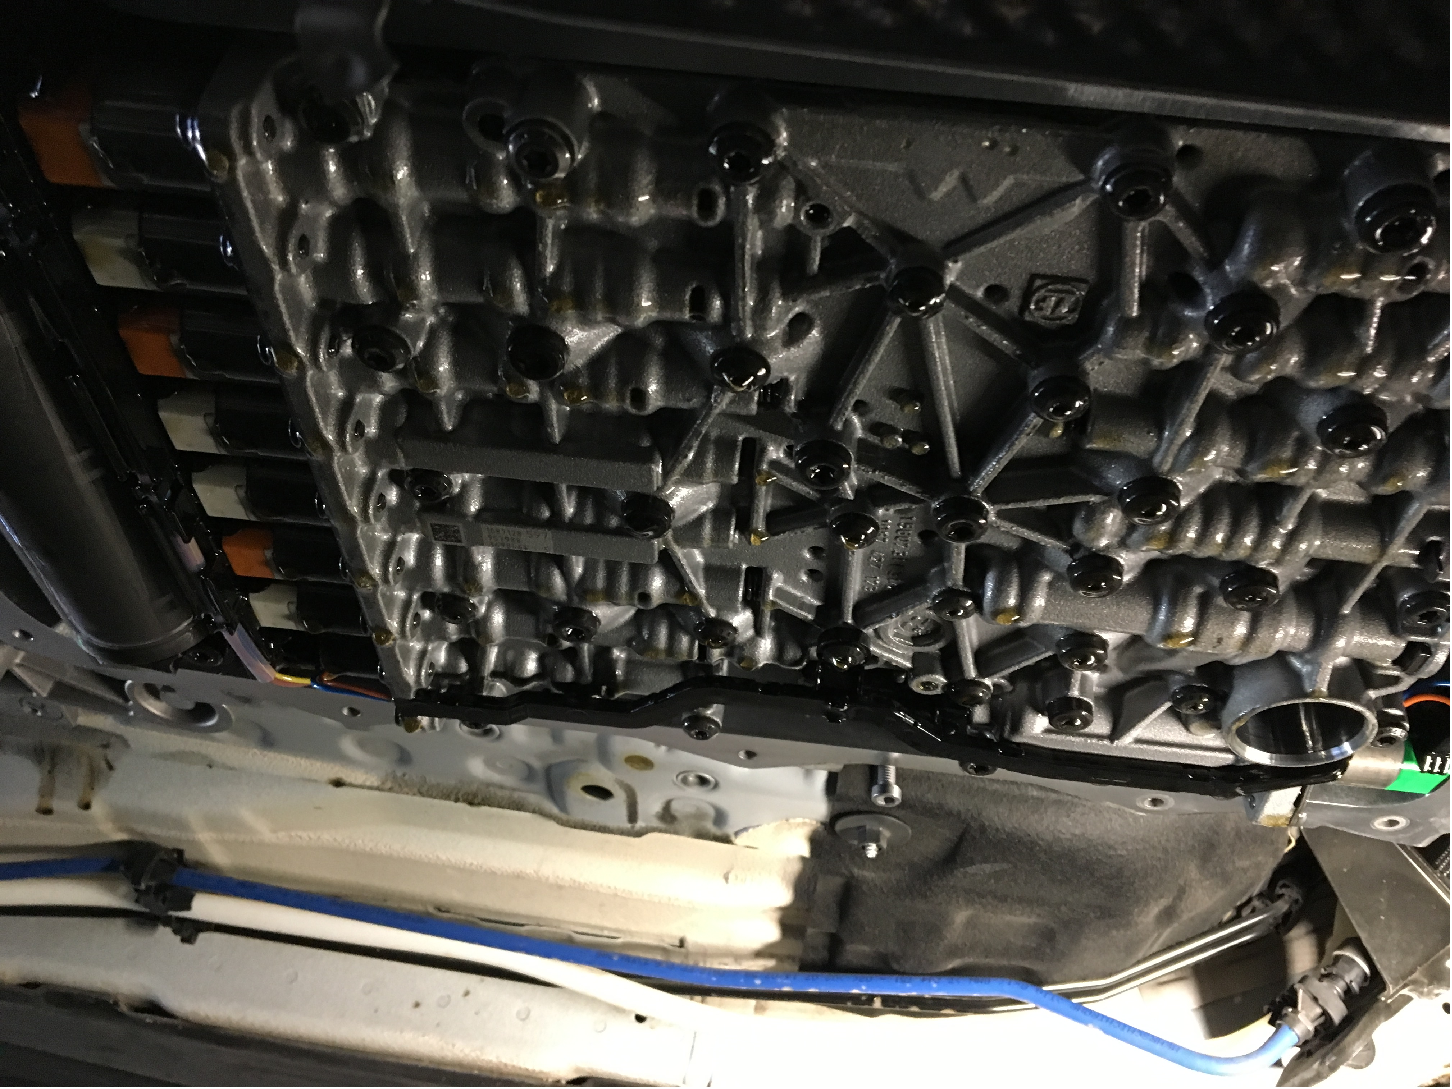 ZF8 ATF CHANGE - Just Shy of 50K - 2Addicts   BMW 2-Series forum